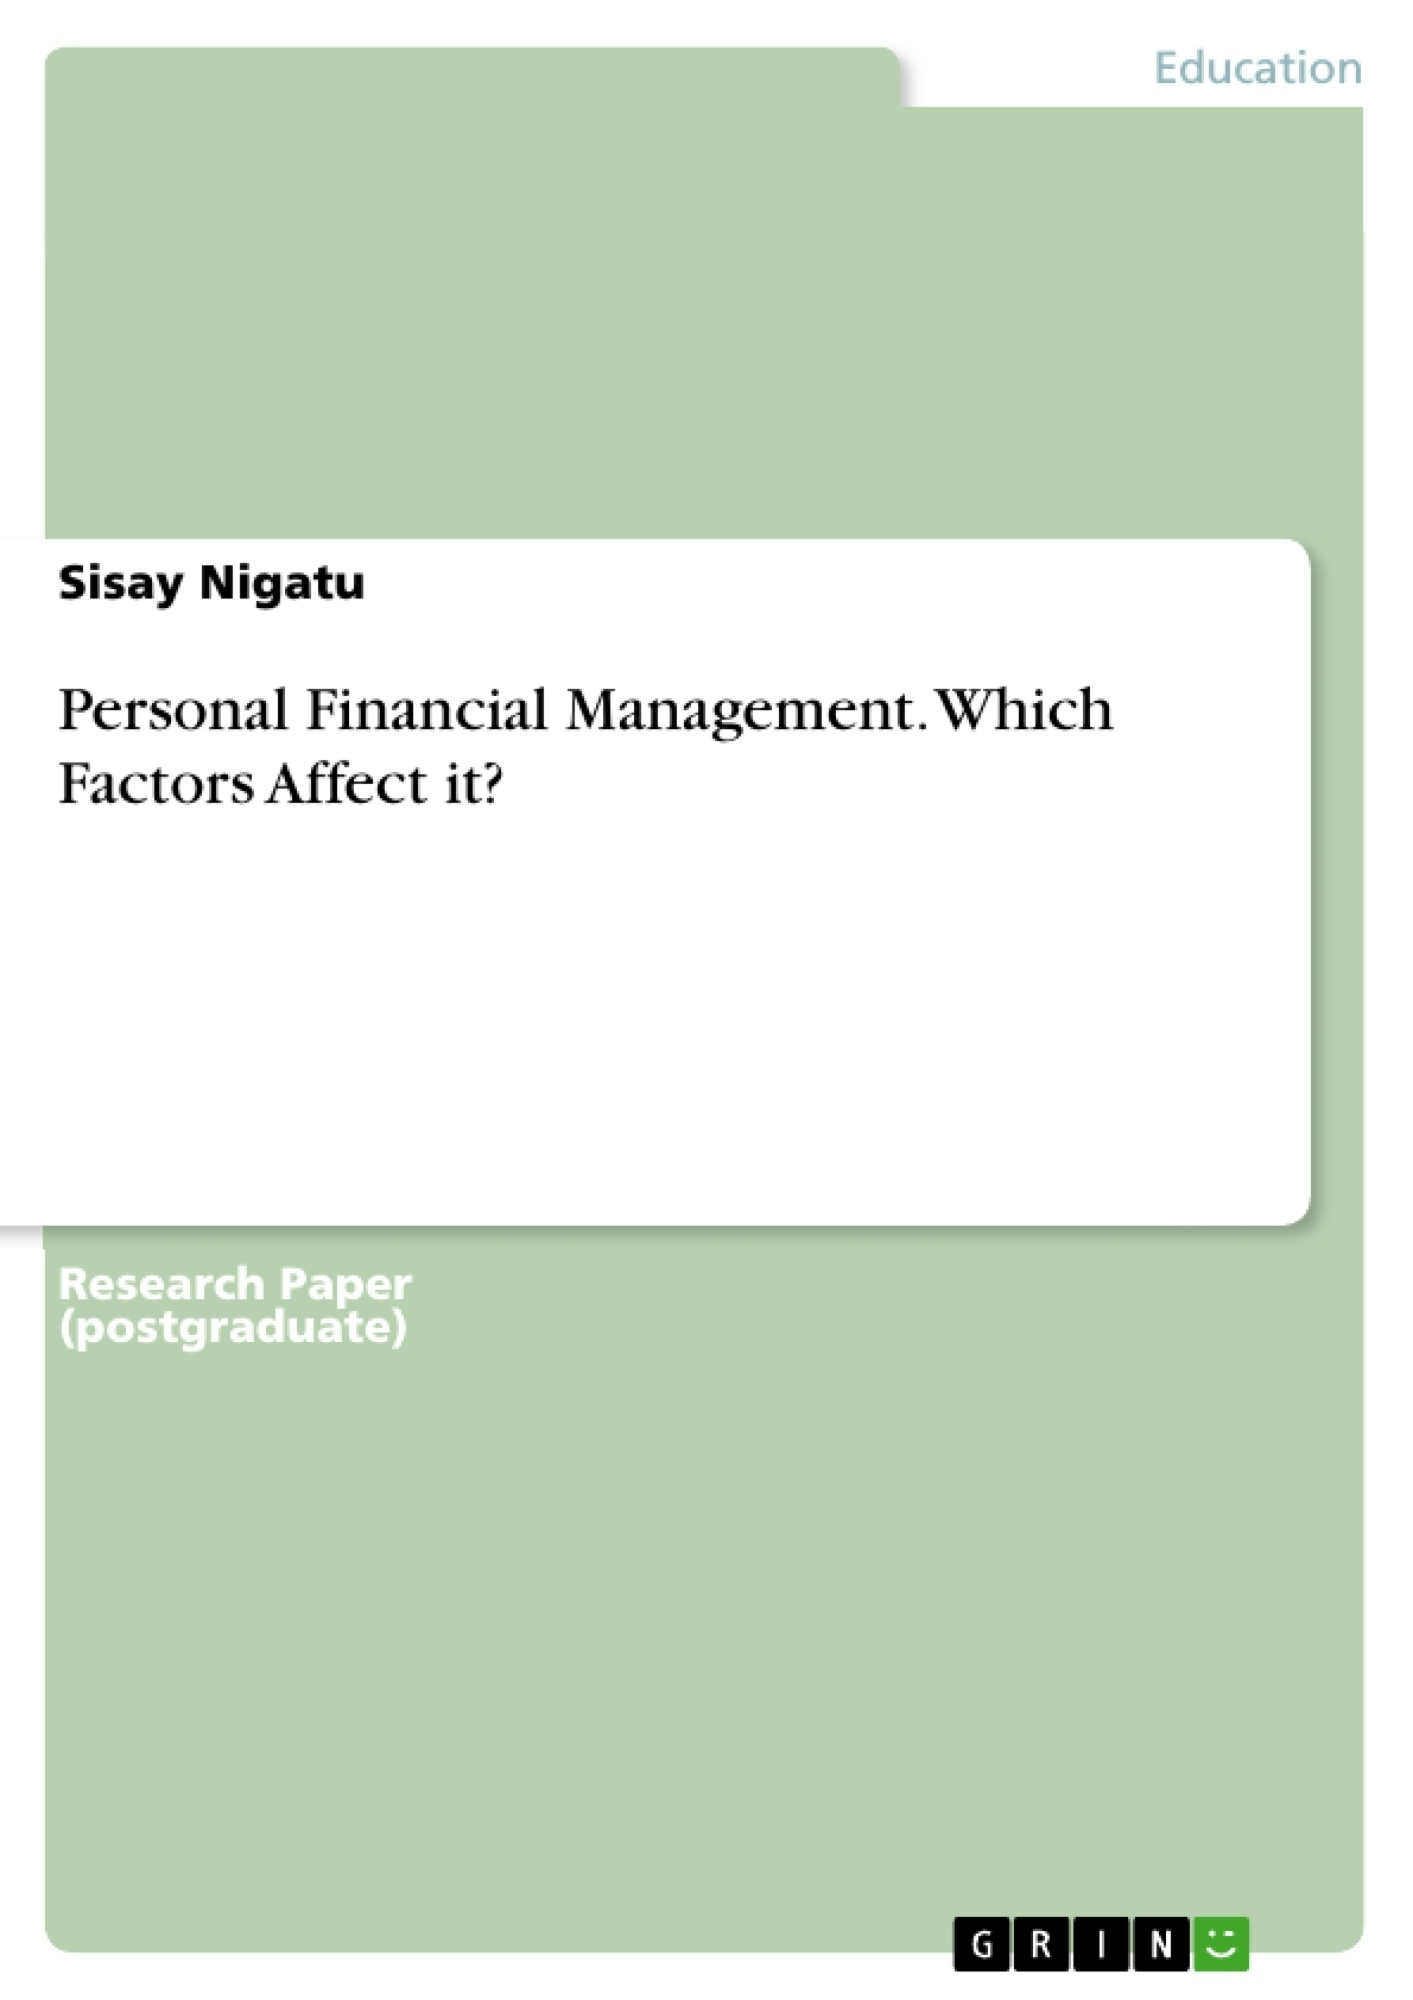 Title: Personal Financial Management. Which Factors Affect it?